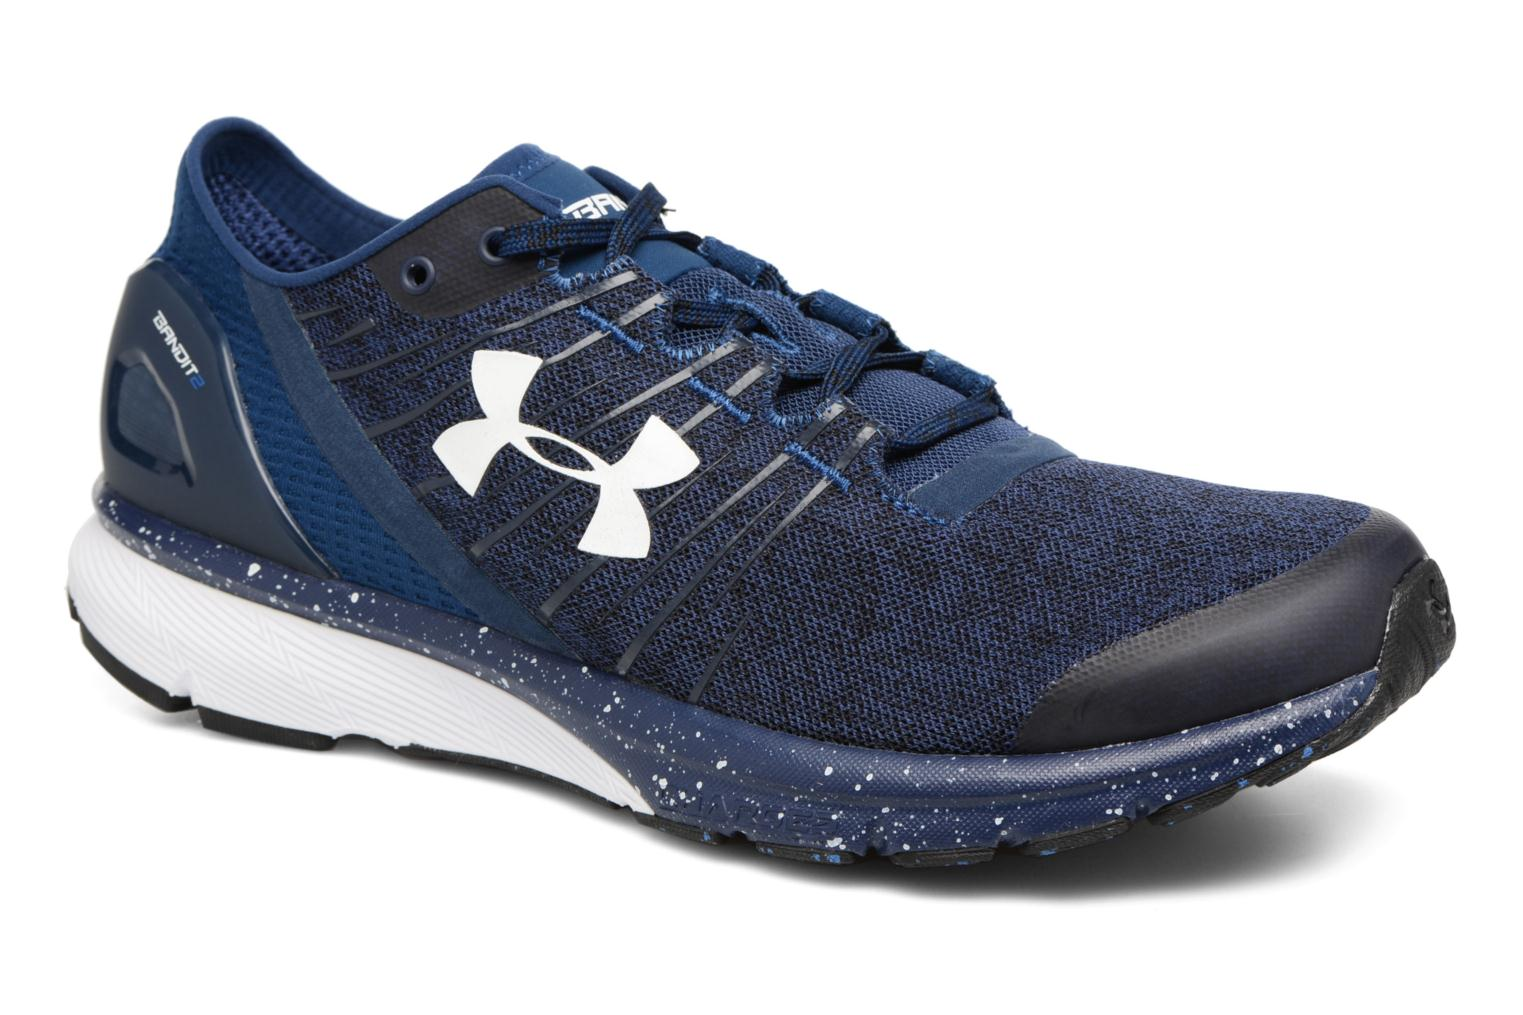 Under Armour Charged Bandit 2 (Bleu) - Chaussures de sport chez Sarenza (296389)